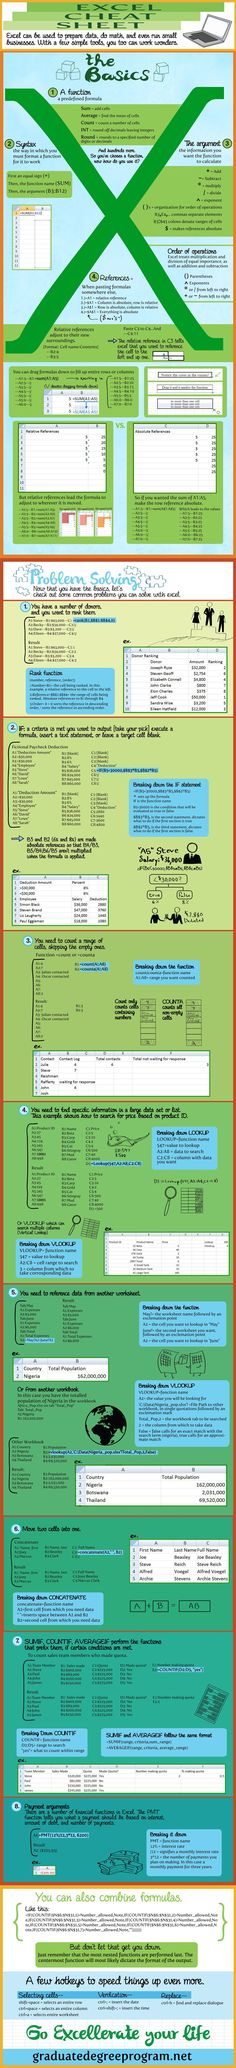 Ediblewildsus  Stunning Microsoft Excel Microsoft And Cheat Sheets On Pinterest With Extraordinary Excel Cheat Httpgraduatedegreeprogramnetexcelcheats With Enchanting Custom Number Format Excel Also Excel Rate Function In Addition How To Add Years To A Date In Excel And Excel Date Picker As Well As Excel Format Function Additionally Right Function In Excel From Pinterestcom With Ediblewildsus  Extraordinary Microsoft Excel Microsoft And Cheat Sheets On Pinterest With Enchanting Excel Cheat Httpgraduatedegreeprogramnetexcelcheats And Stunning Custom Number Format Excel Also Excel Rate Function In Addition How To Add Years To A Date In Excel From Pinterestcom